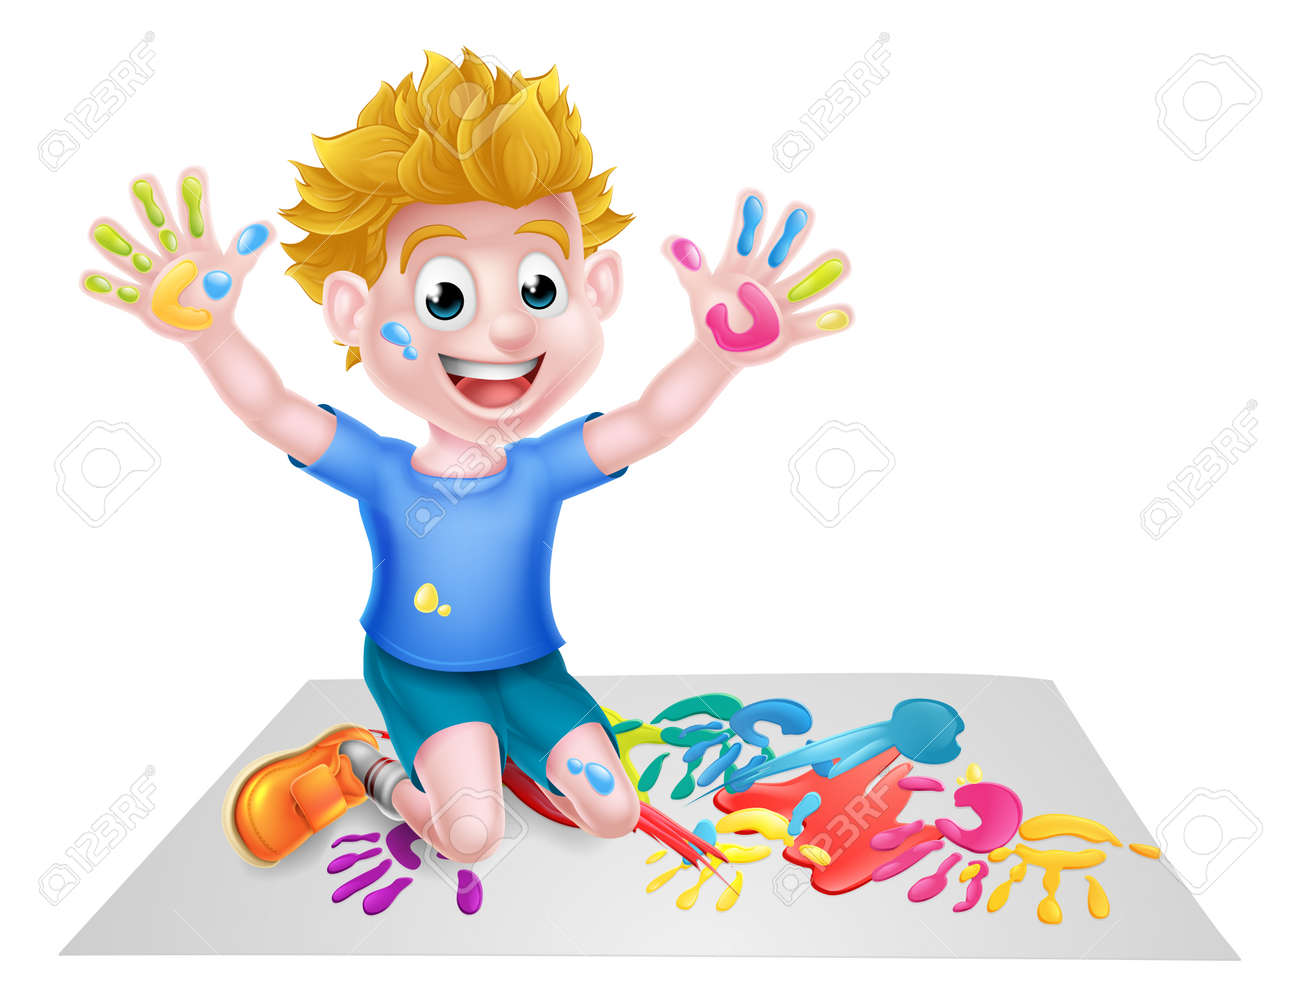 Cartoon Boy Kid Messy Playing With Paint Painting Royalty Free